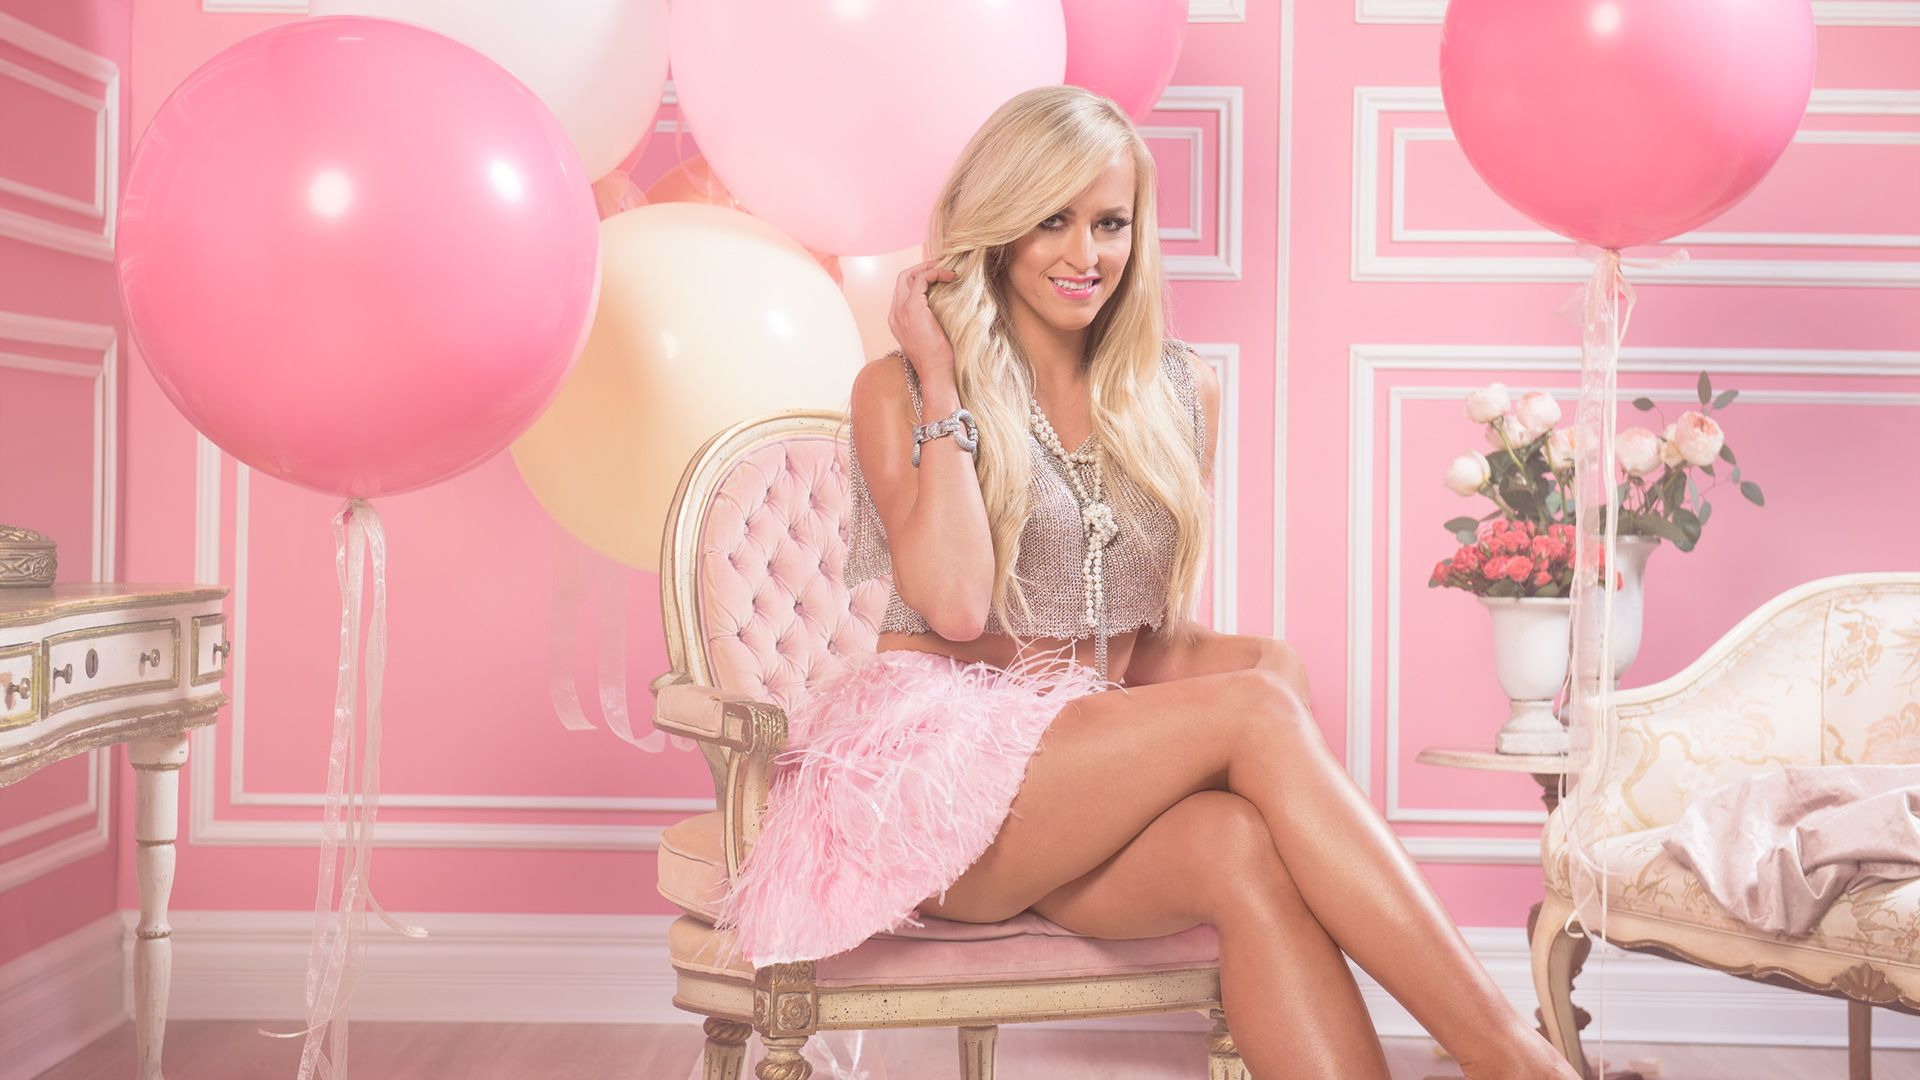 Summer Rae Pink Clothes